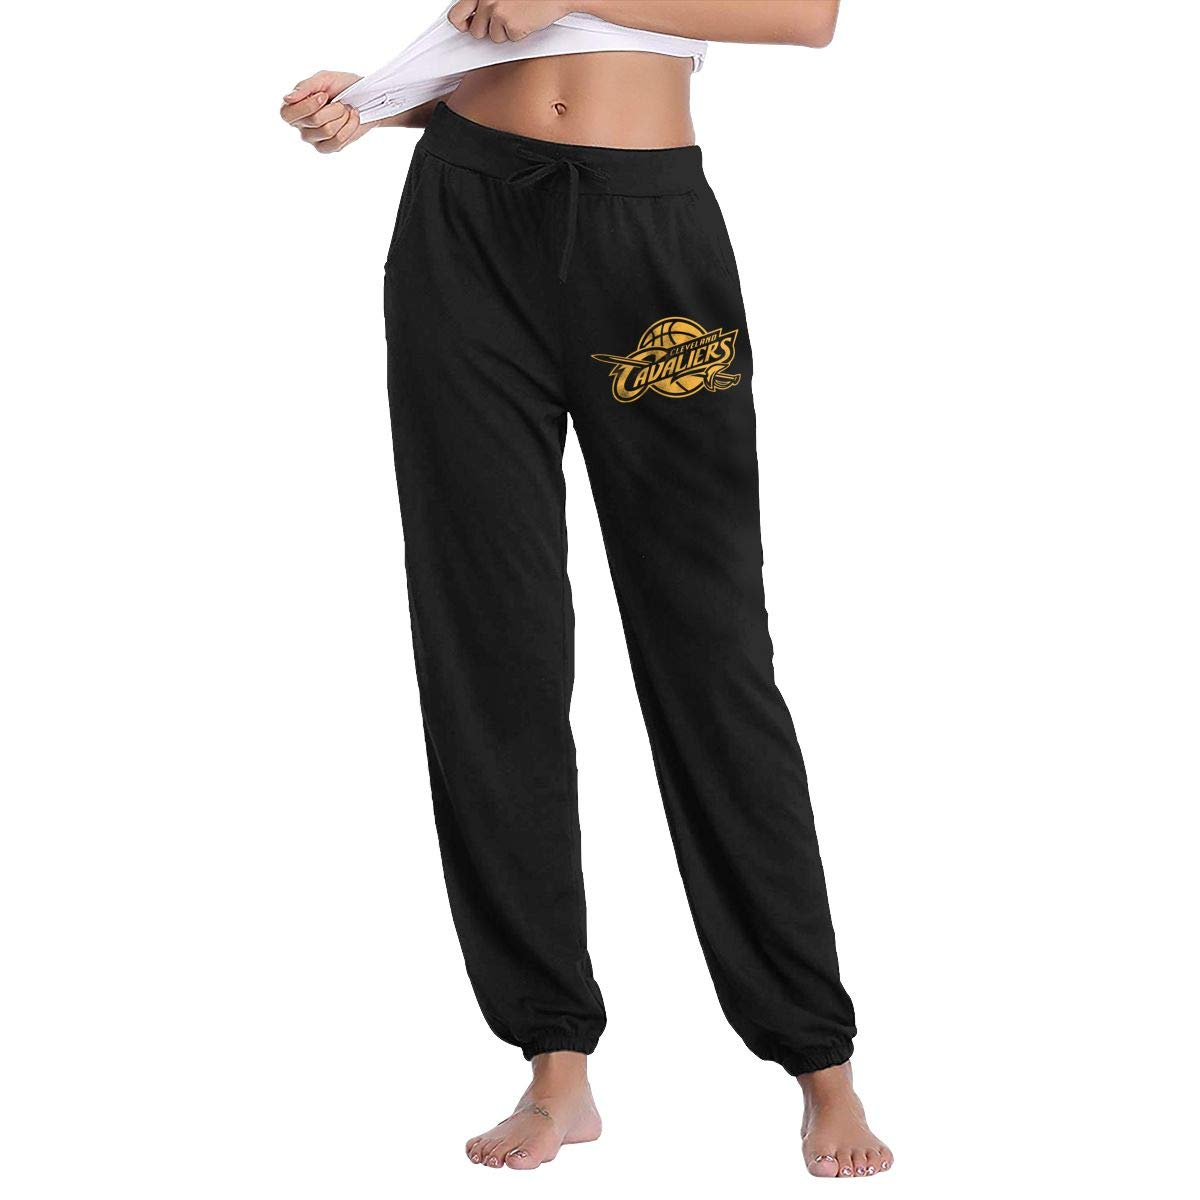 Black XXL GavDon Women's ClevelandCavaliersWineOutlineContrast Casual Sweatpants Yoga Jogger Lounge Sweat Pants with Pockets